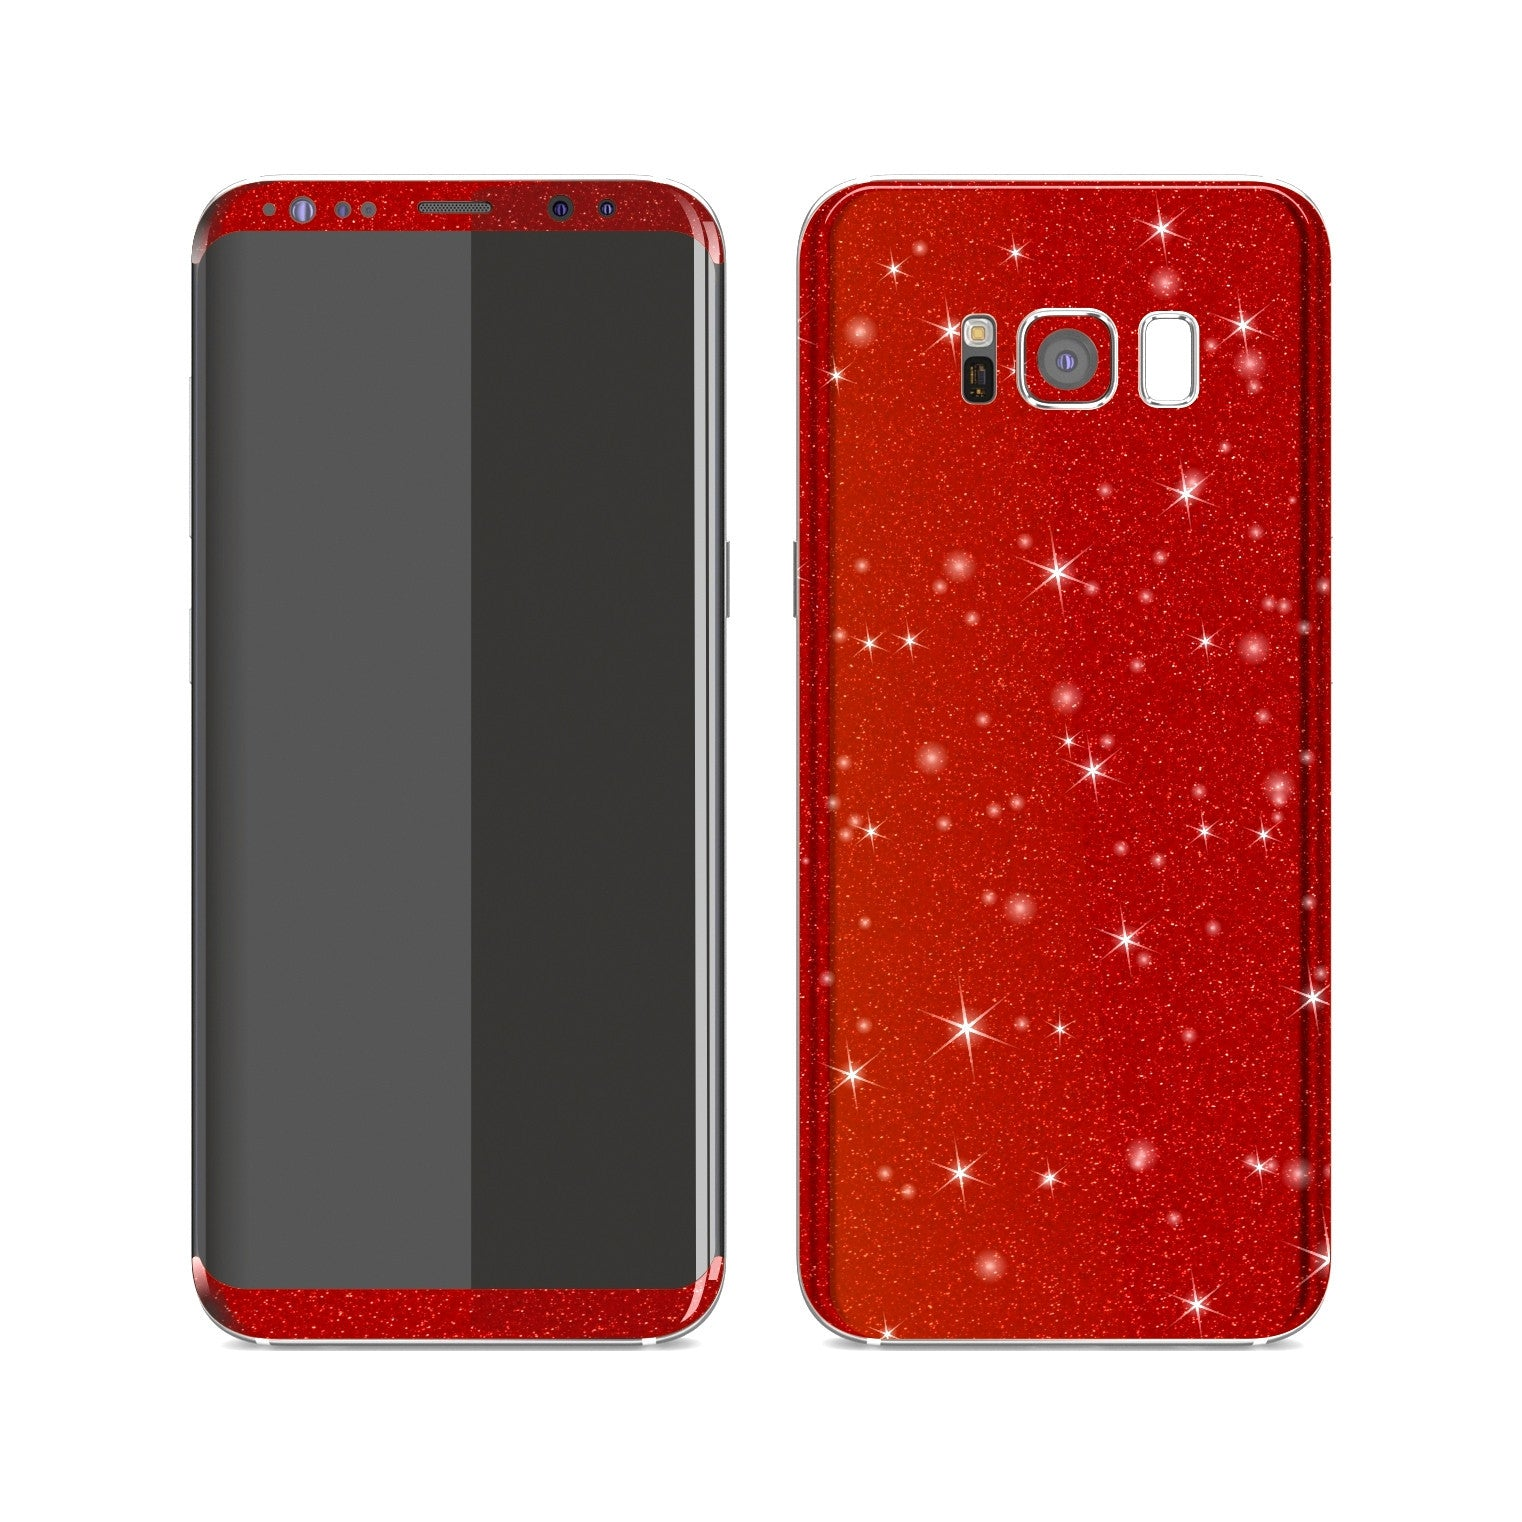 Samsung Galaxy S8+ Diamond Red Shimmering, Sparkling, Glitter Skin, Decal, Wrap, Protector, Cover by EasySkinz | EasySkinz.com